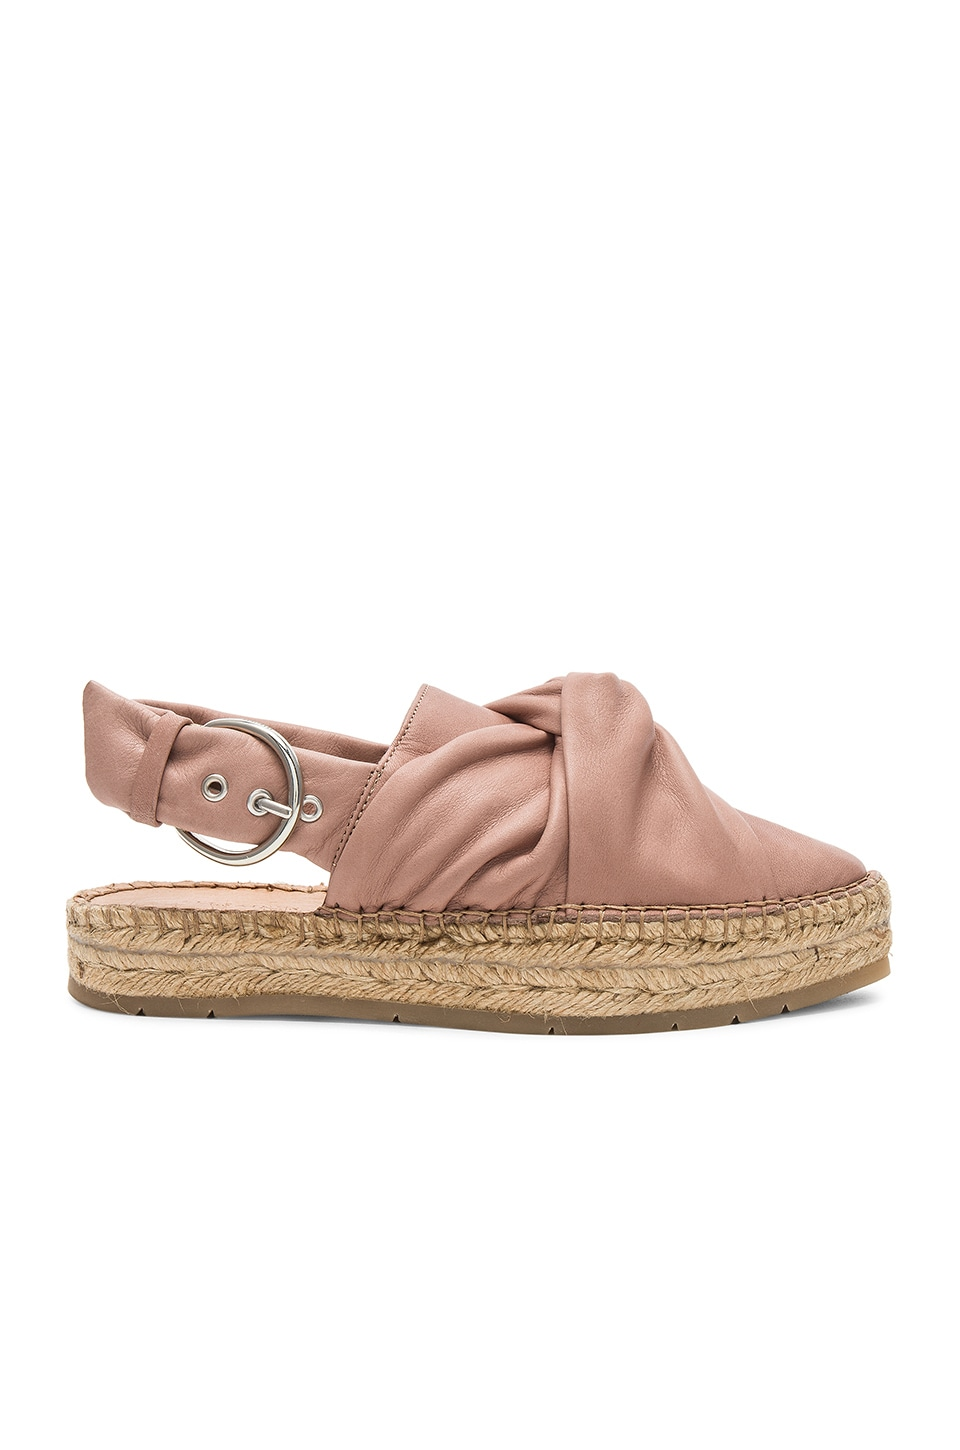 Photo of Rise Espadrille by ALLSAINTS shoes